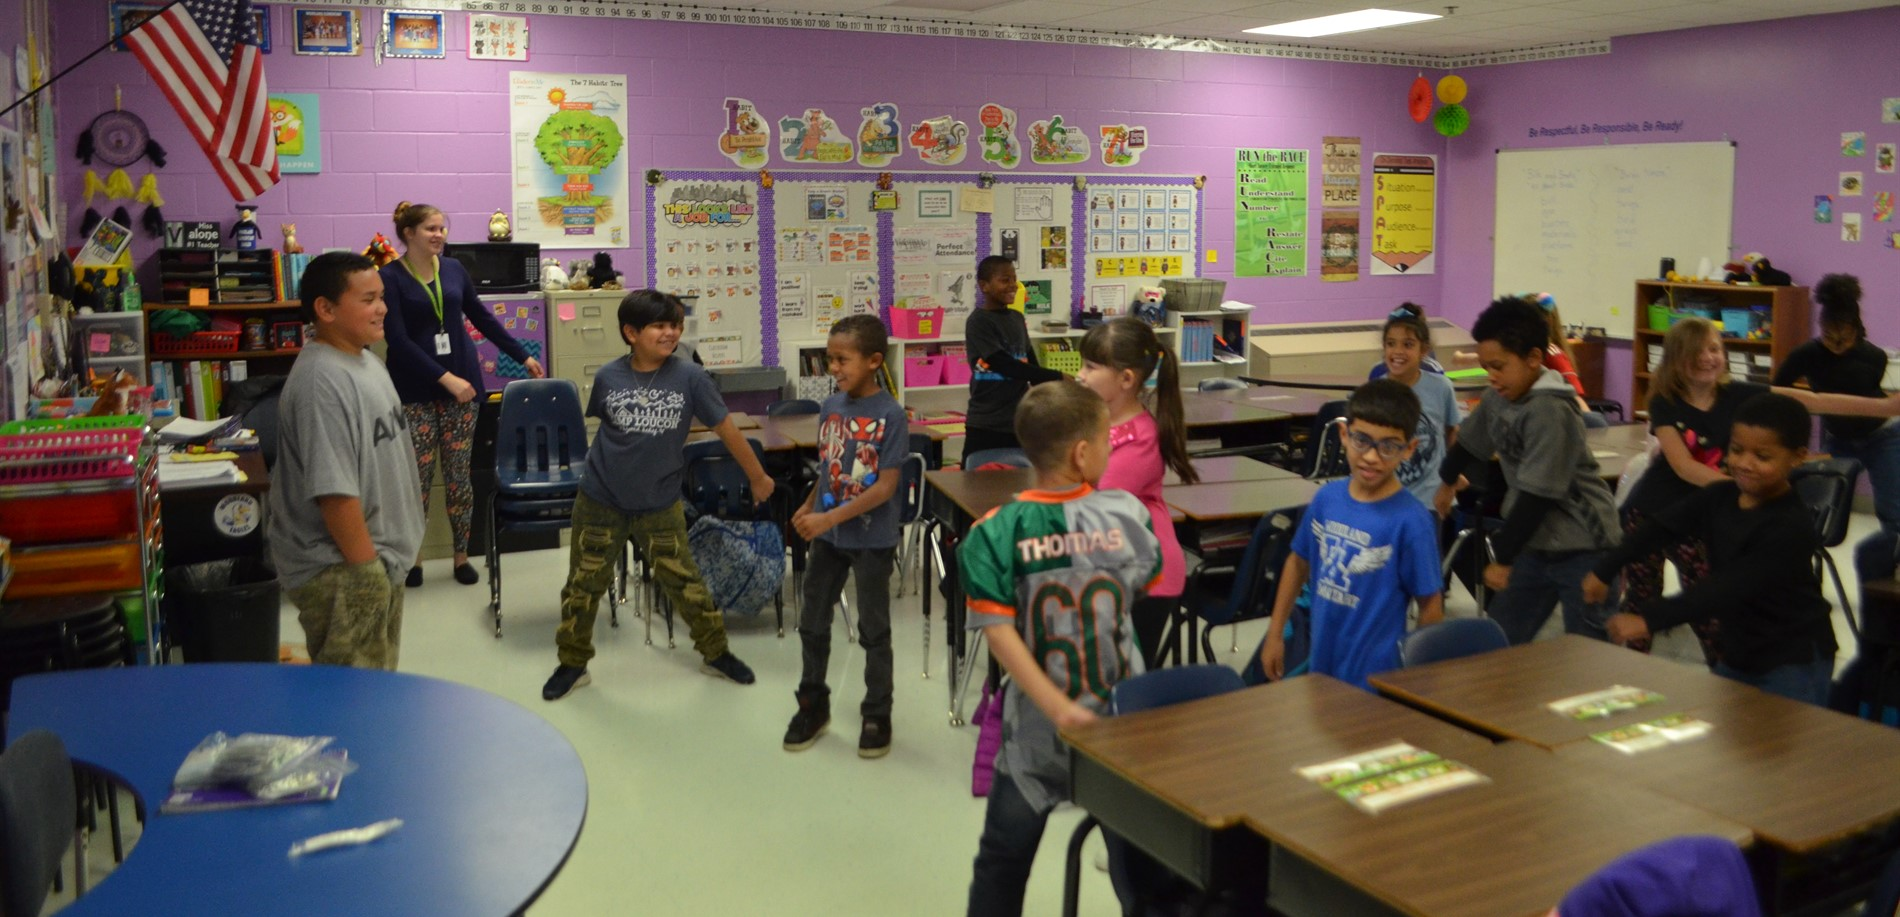 Woodland Elementary School students enjoyed recess inside the classroom on a cold day.